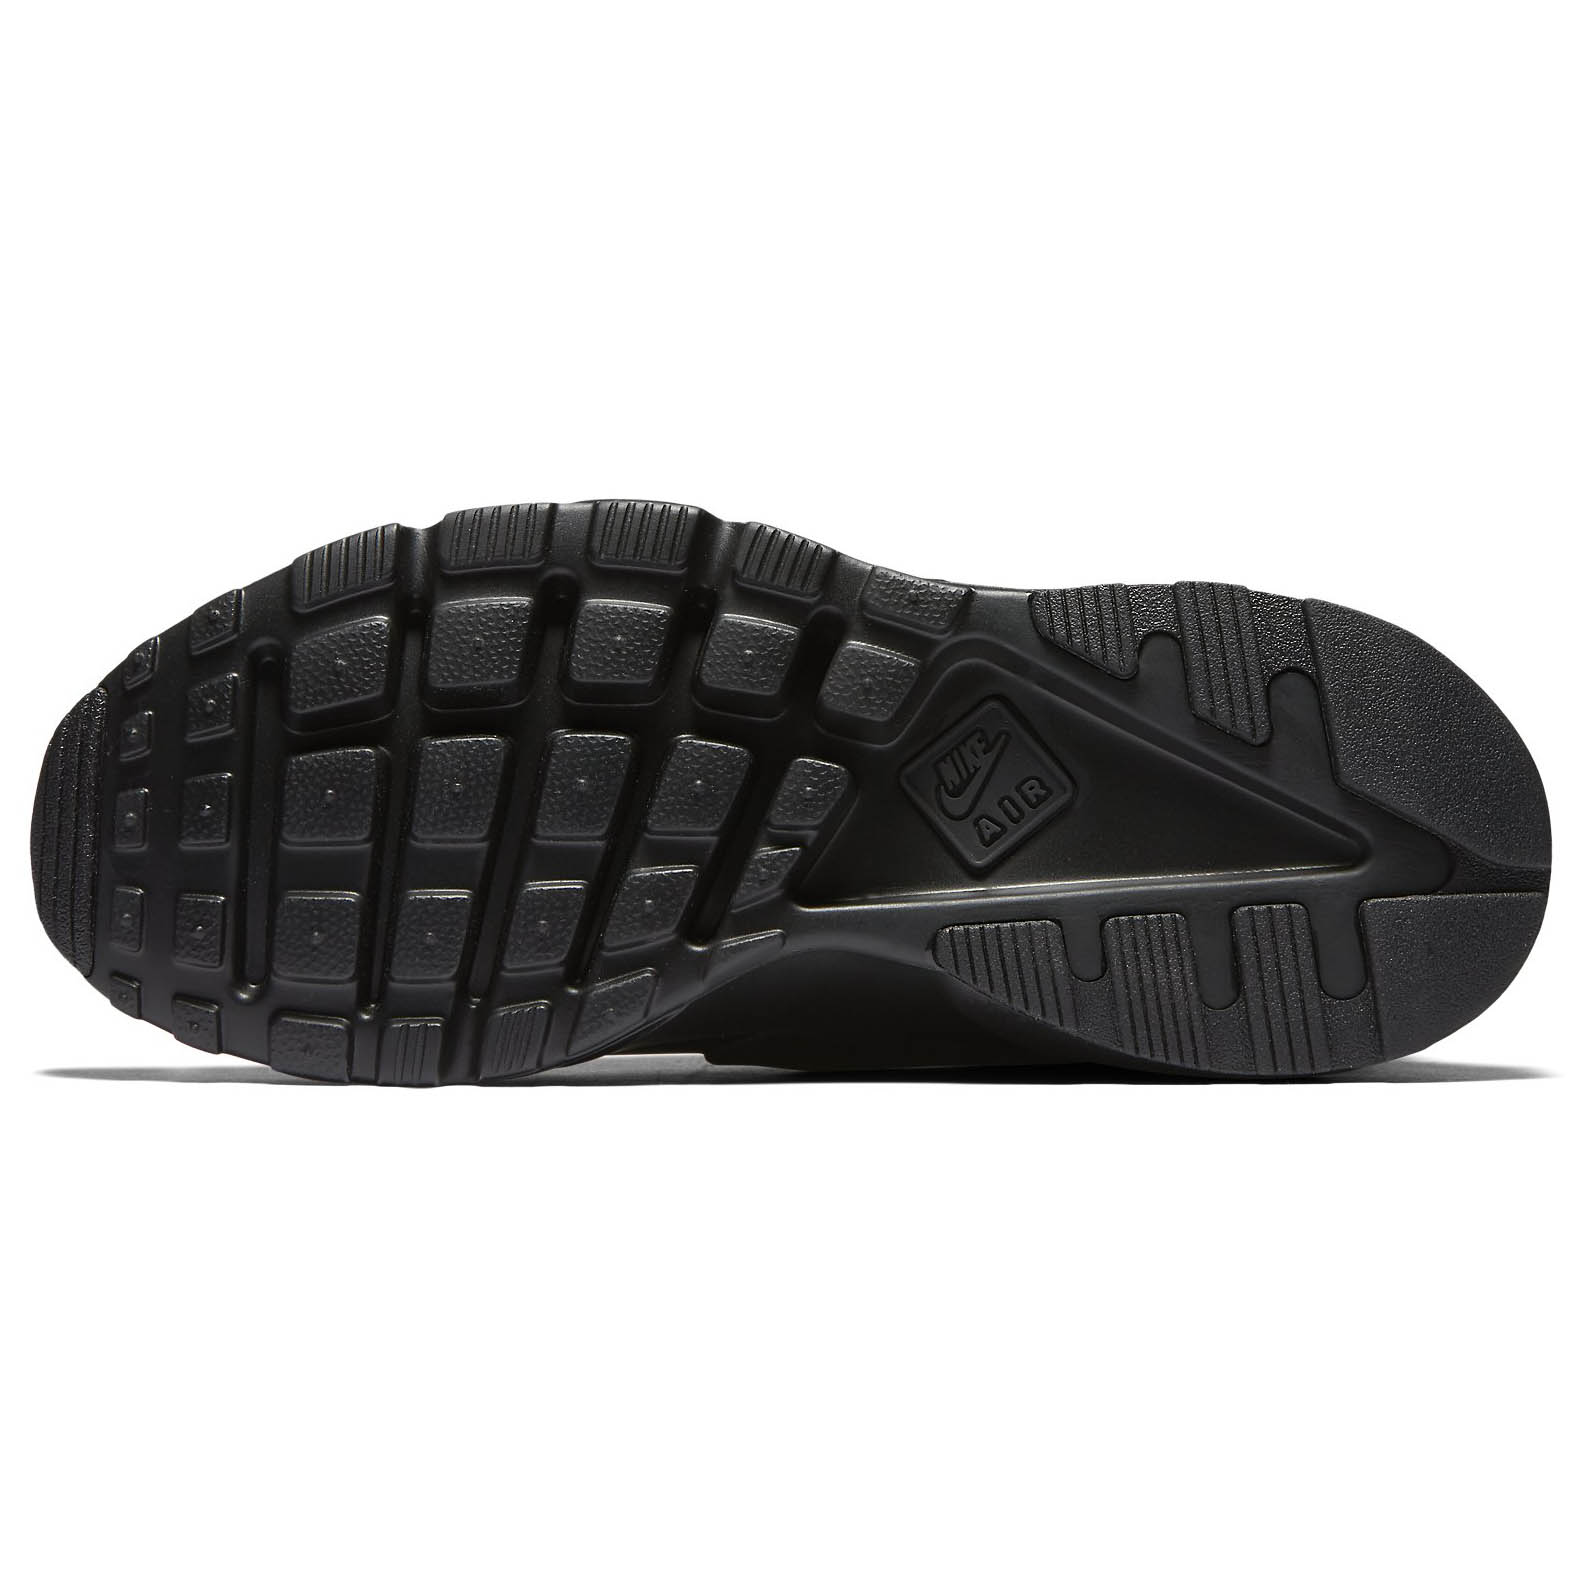 Cheap huarache nike air huarache Cheap pants tempo 31f90 72890 a3b322